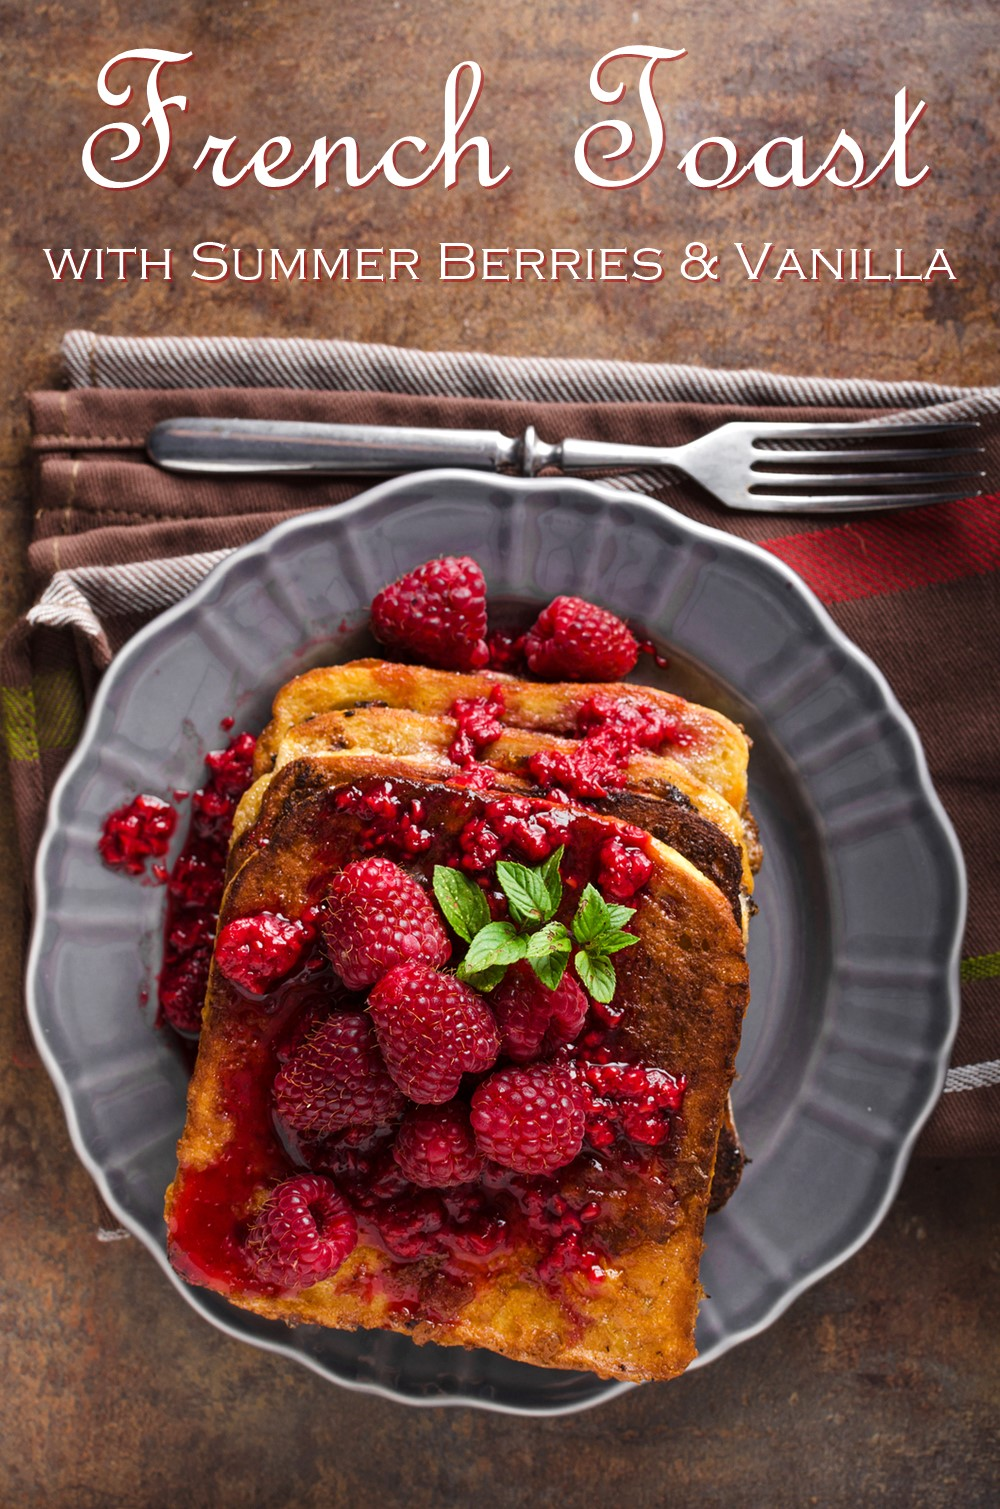 Summer Berry French Toast Recipe with a Warm Vanilla Infusion - simply dairy-free, nut-free, soy-free and optionally gluten free